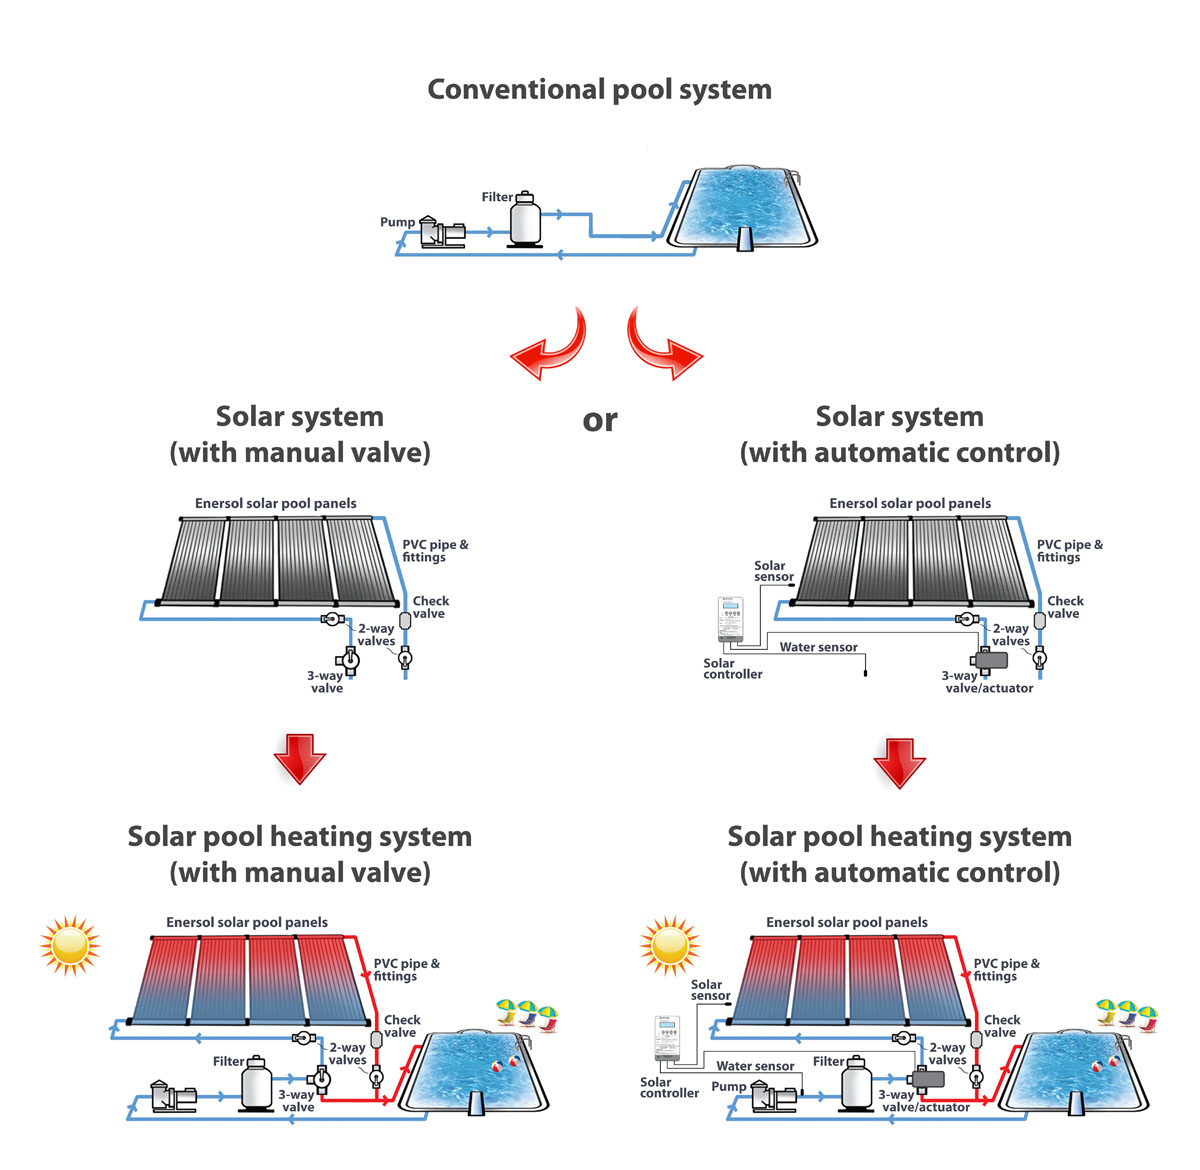 Enersol solar pool heating system options